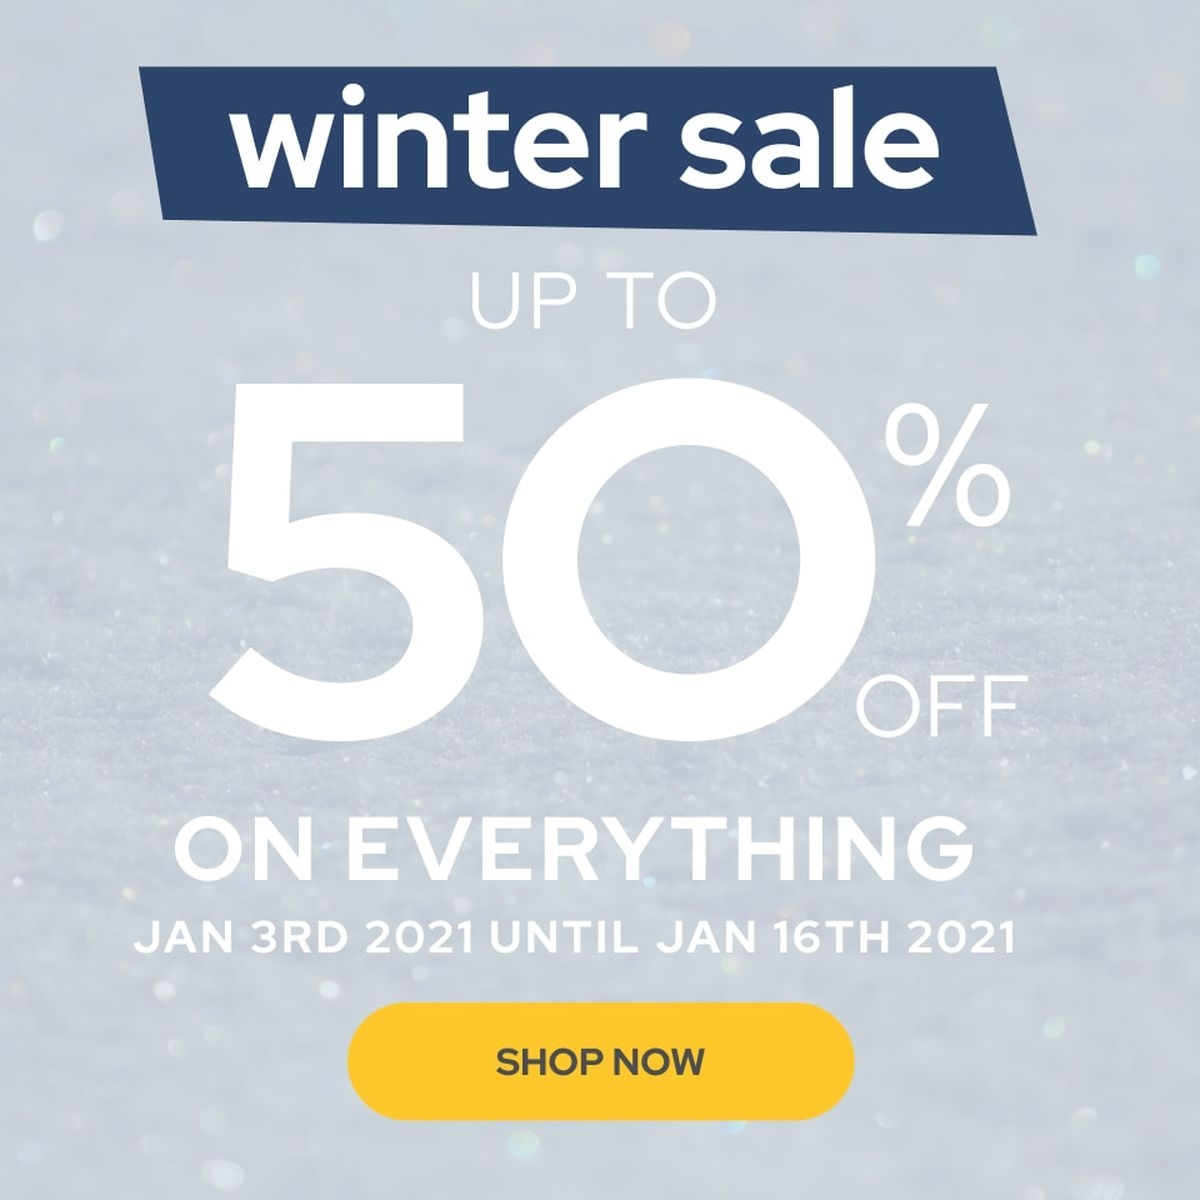 Shop Women'S & Men'S Clothing | Winter Sales Up To 50% Off